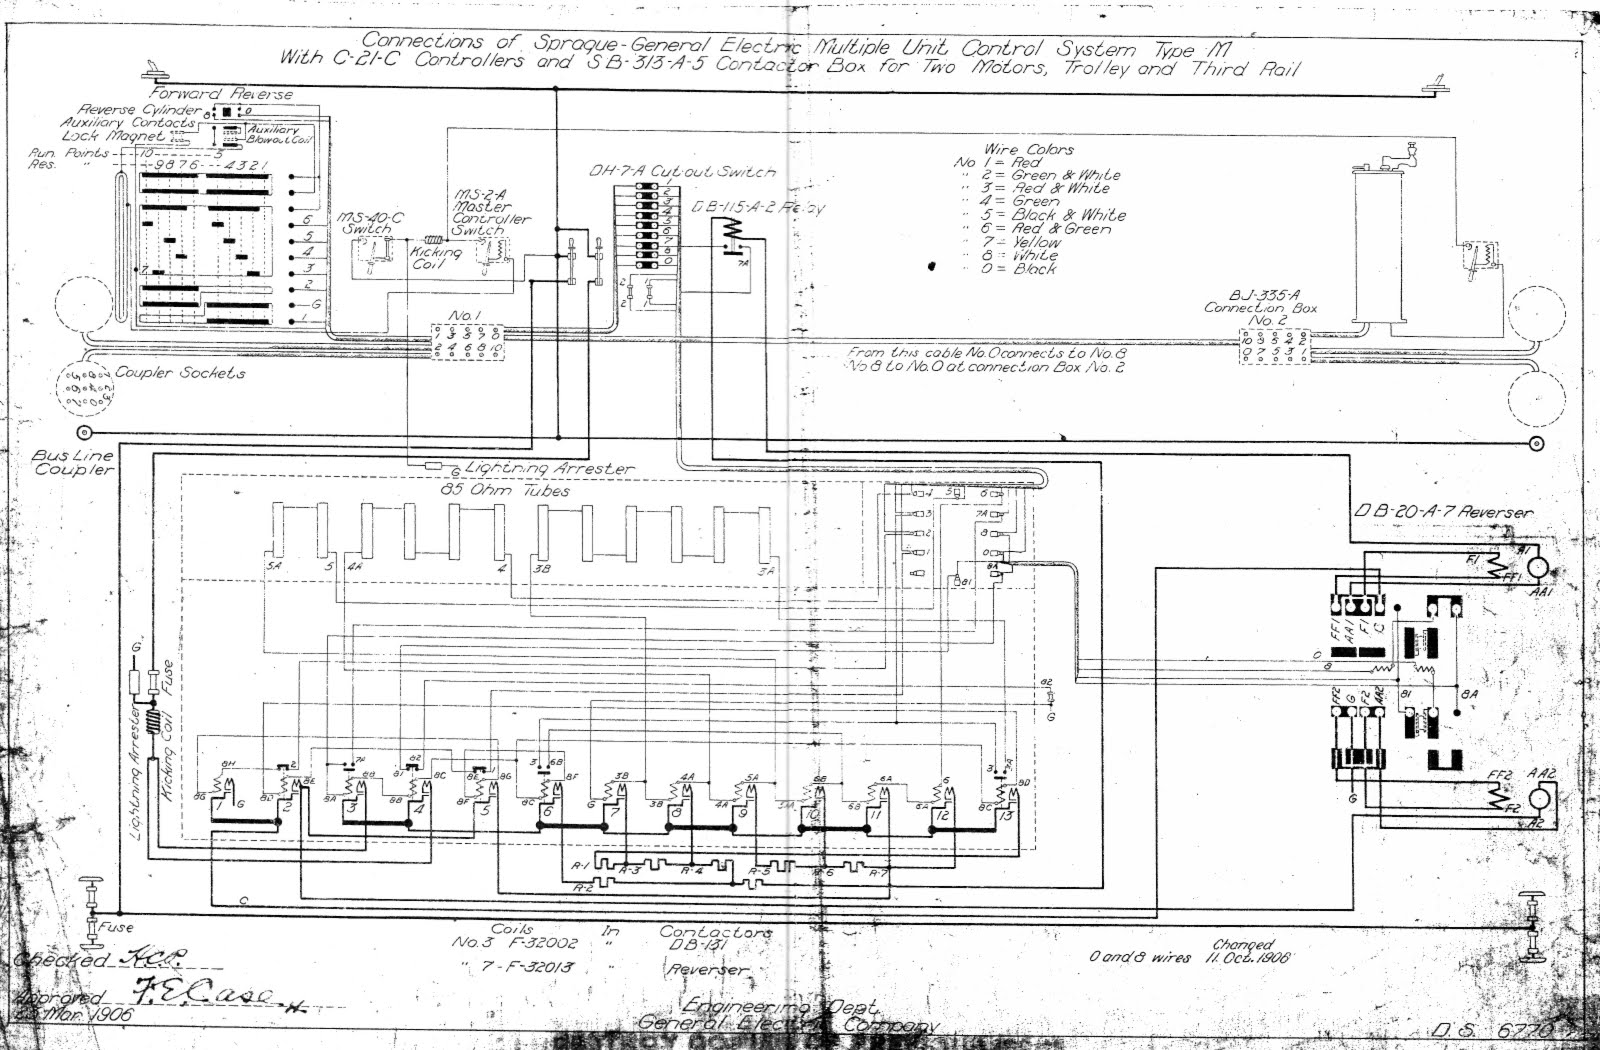 1996 Chevy Blazer Wiring Diagram For Car Stereo Mitsubishi Cadillac Mirror Diagrams Get Free Image About